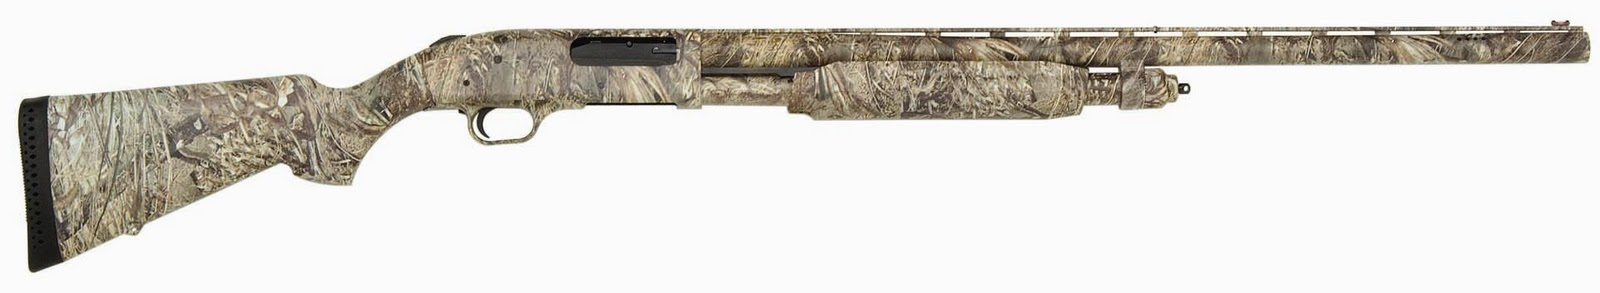 Fowl Attraction: Mossberg 835 Ulti-Mag 12 Gauge Shotgun Review